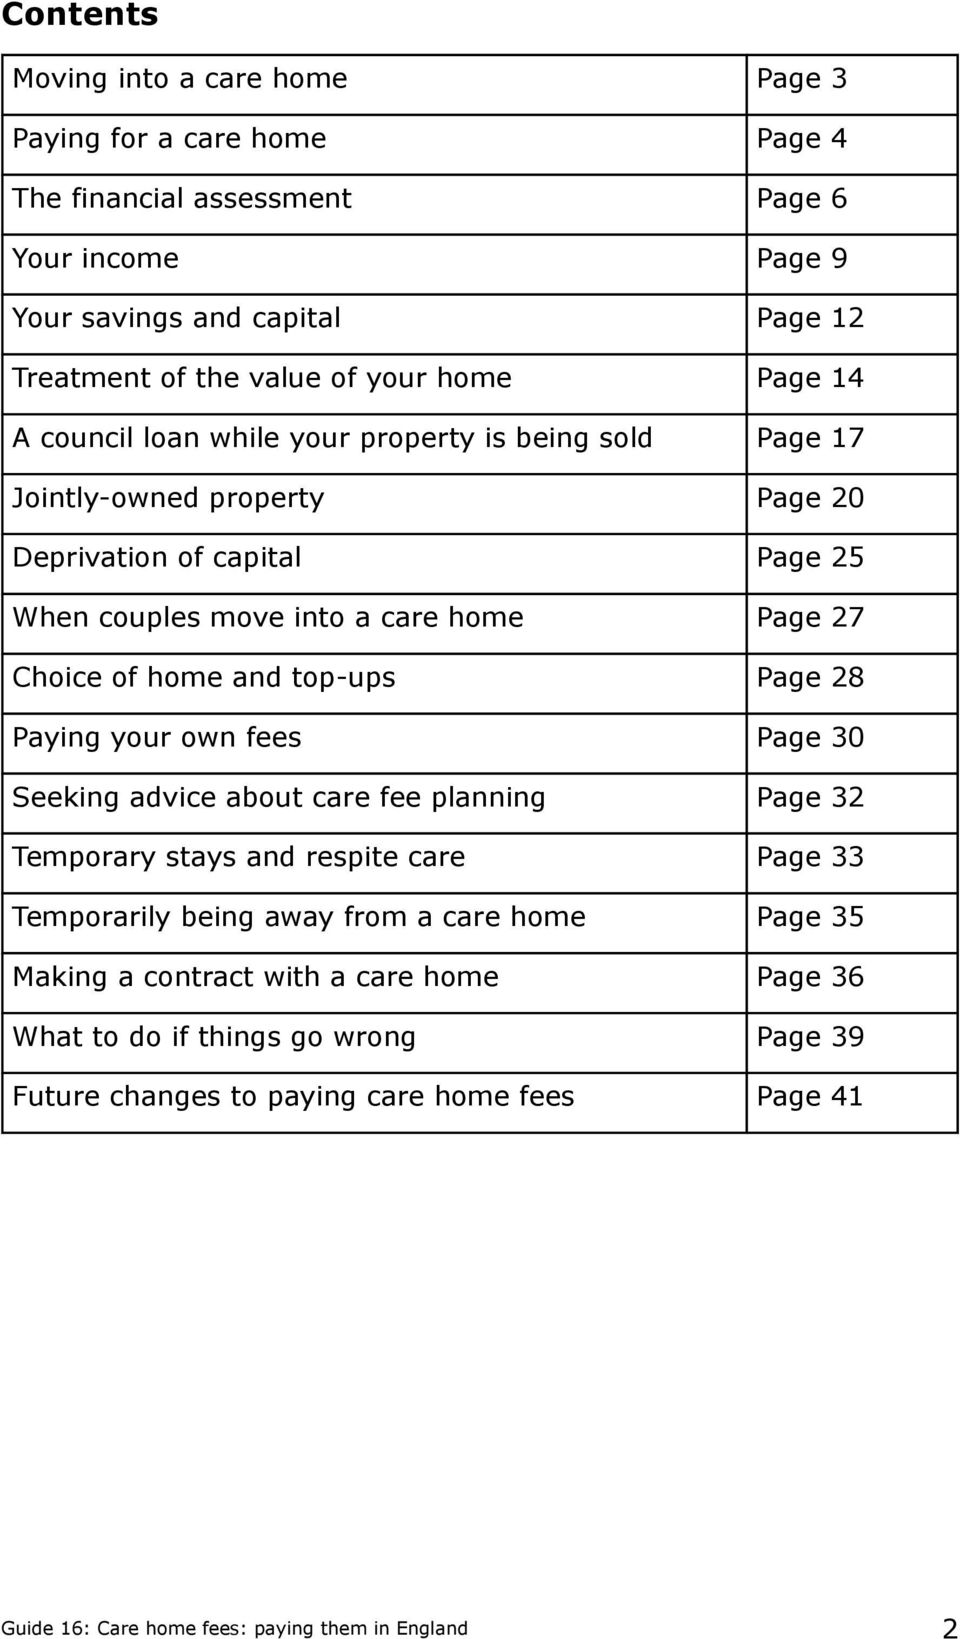 home and top-ups Page 28 Paying your own fees Page 30 Seeking advice about care fee planning Page 32 Temporary stays and respite care Page 33 Temporarily being away from a care home